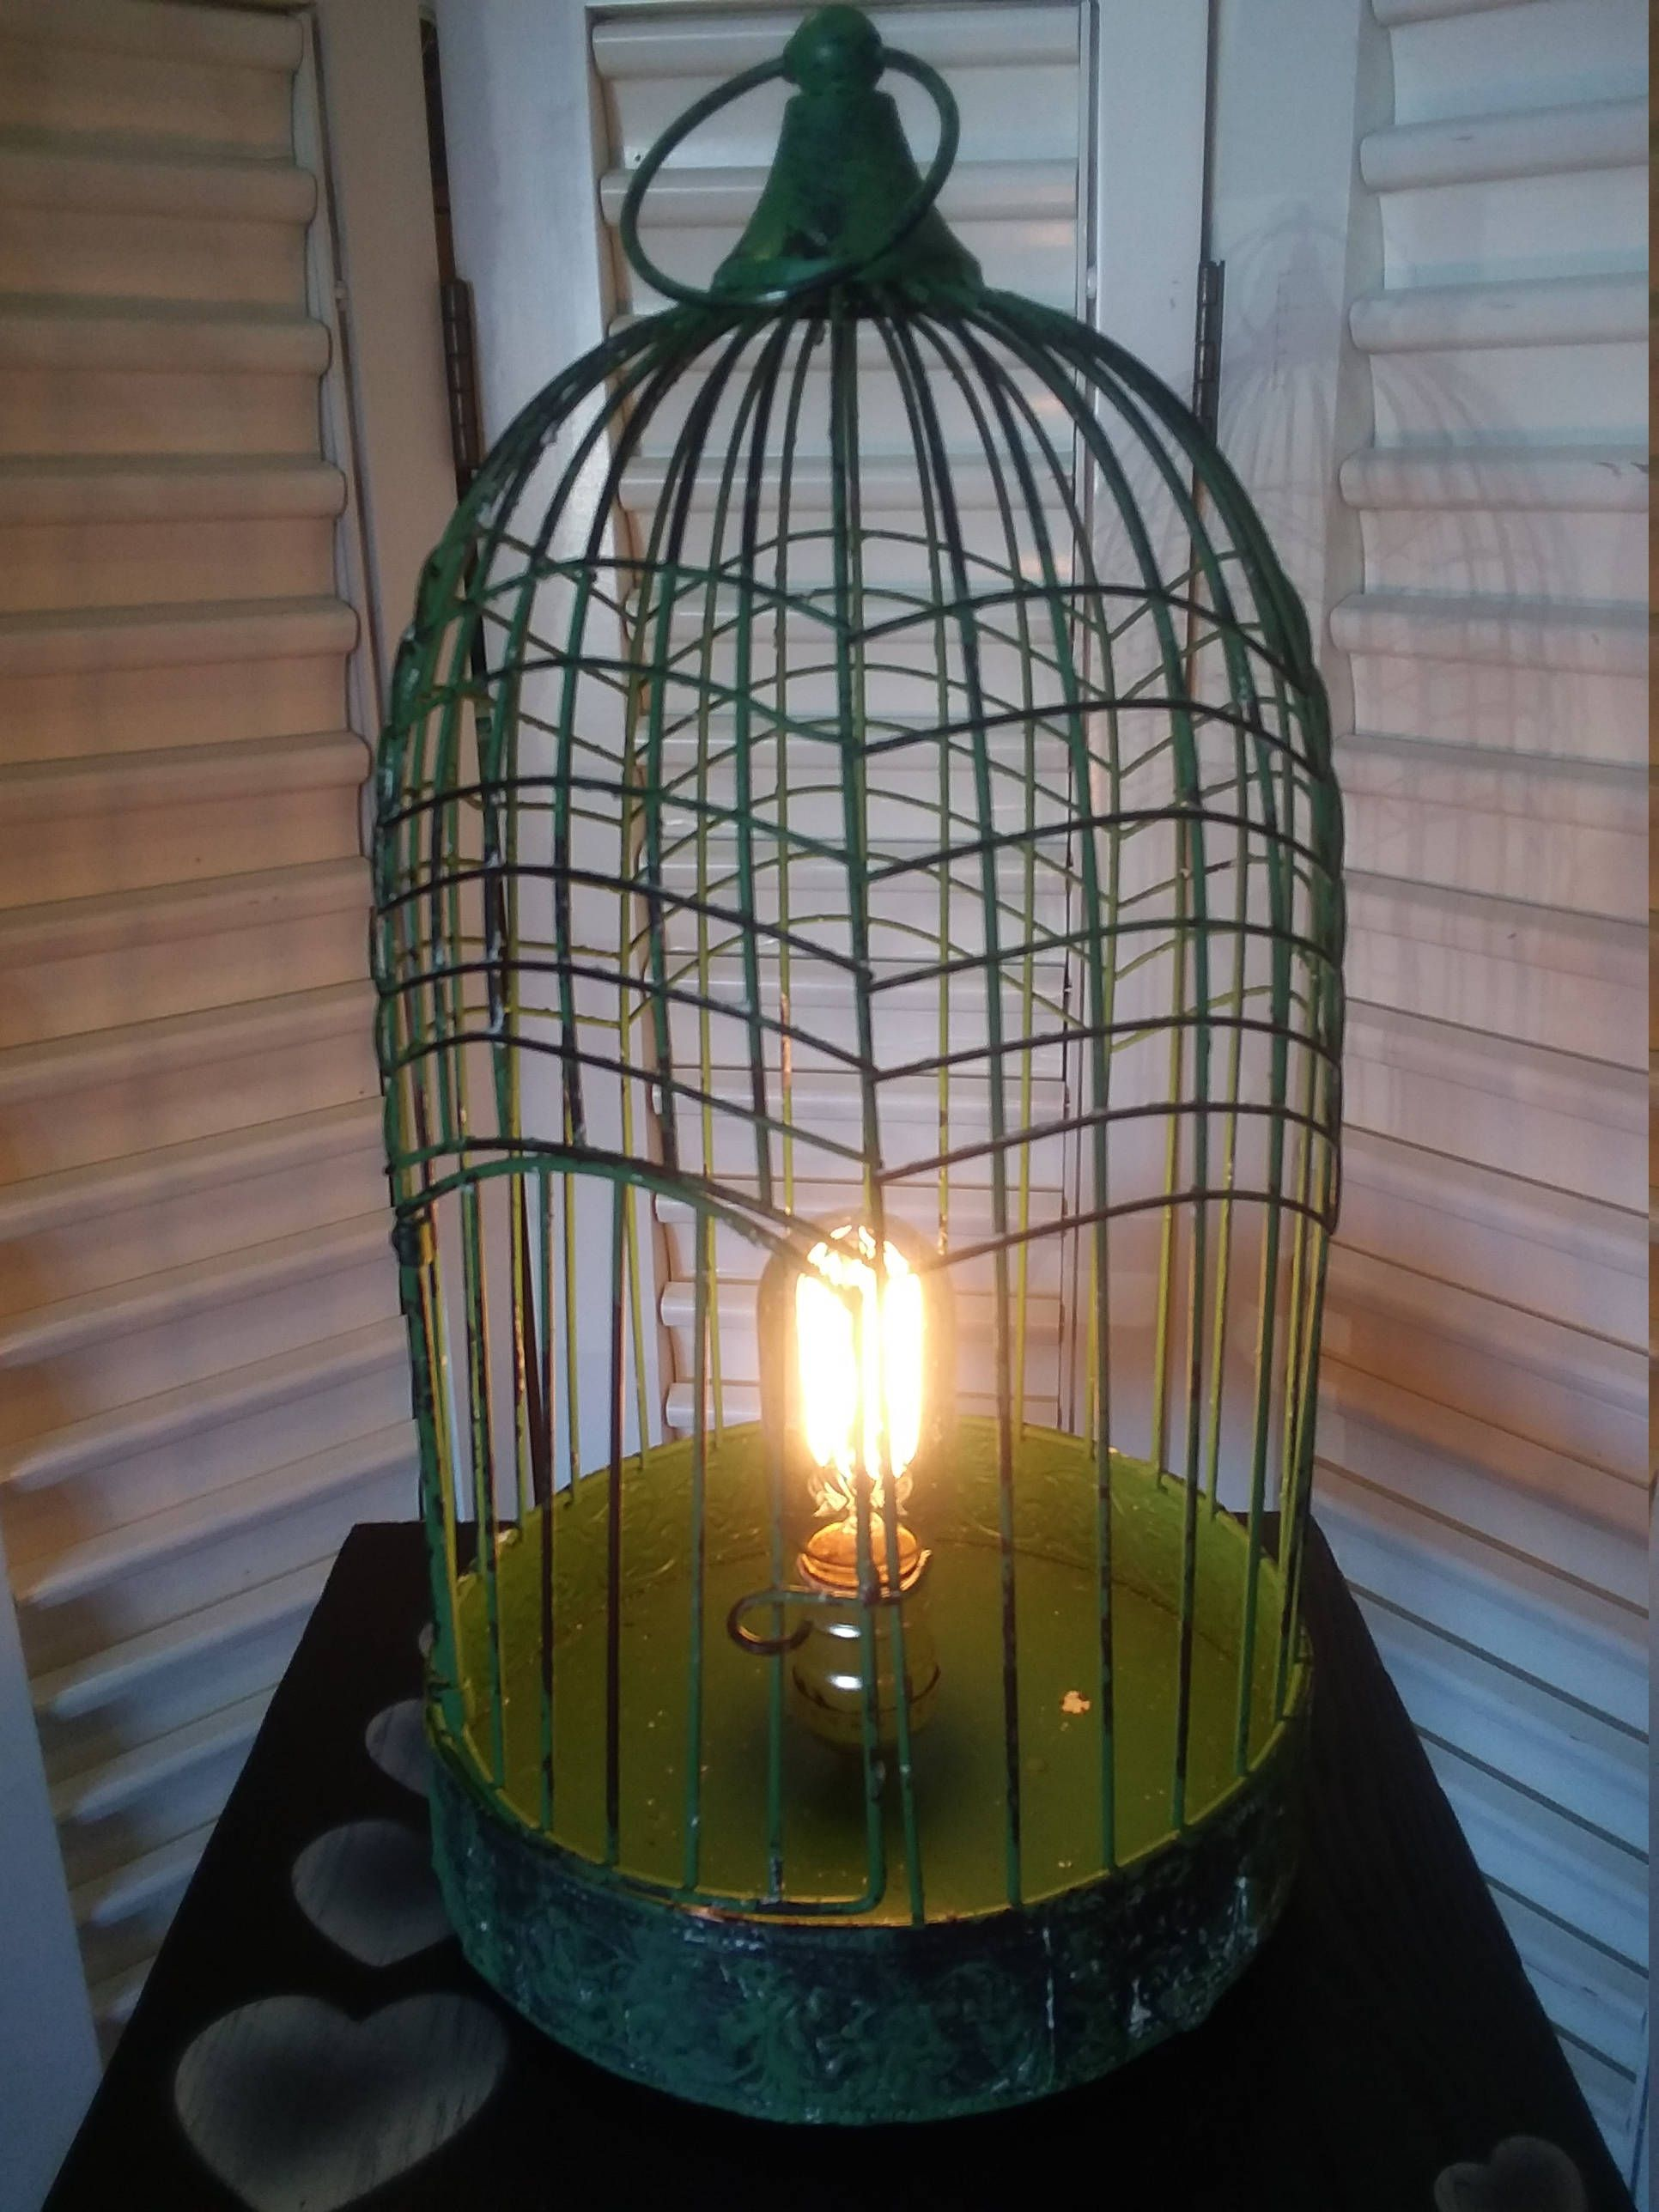 Metal Birdcage Table Top Light. Desk Lamp. Fits Many Decor